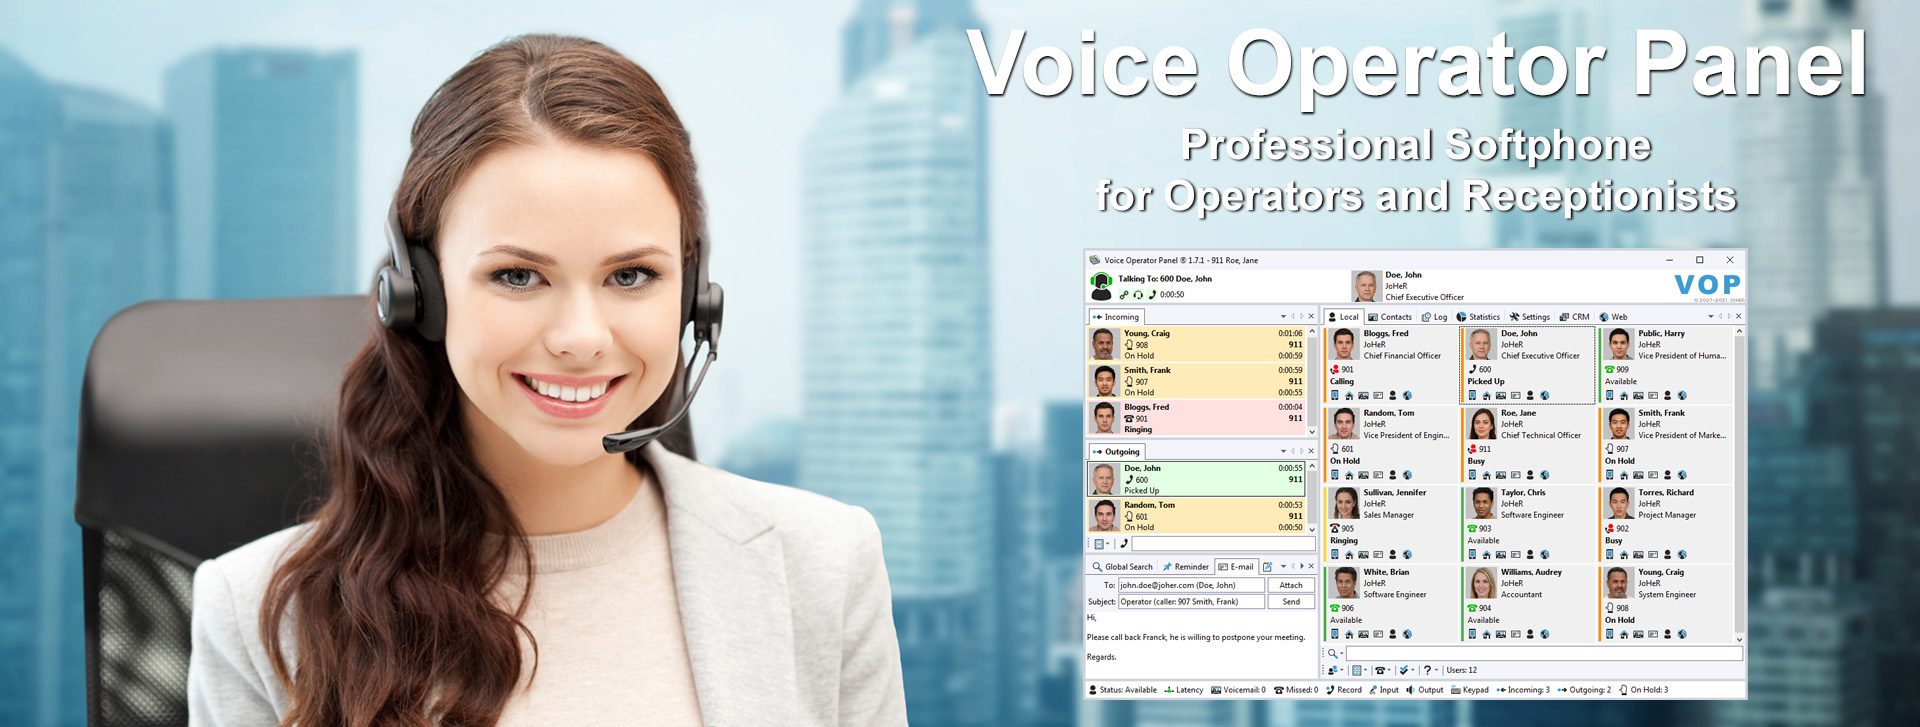 Voice Operator Panel - Professional Softphone for Operators and Receptionists